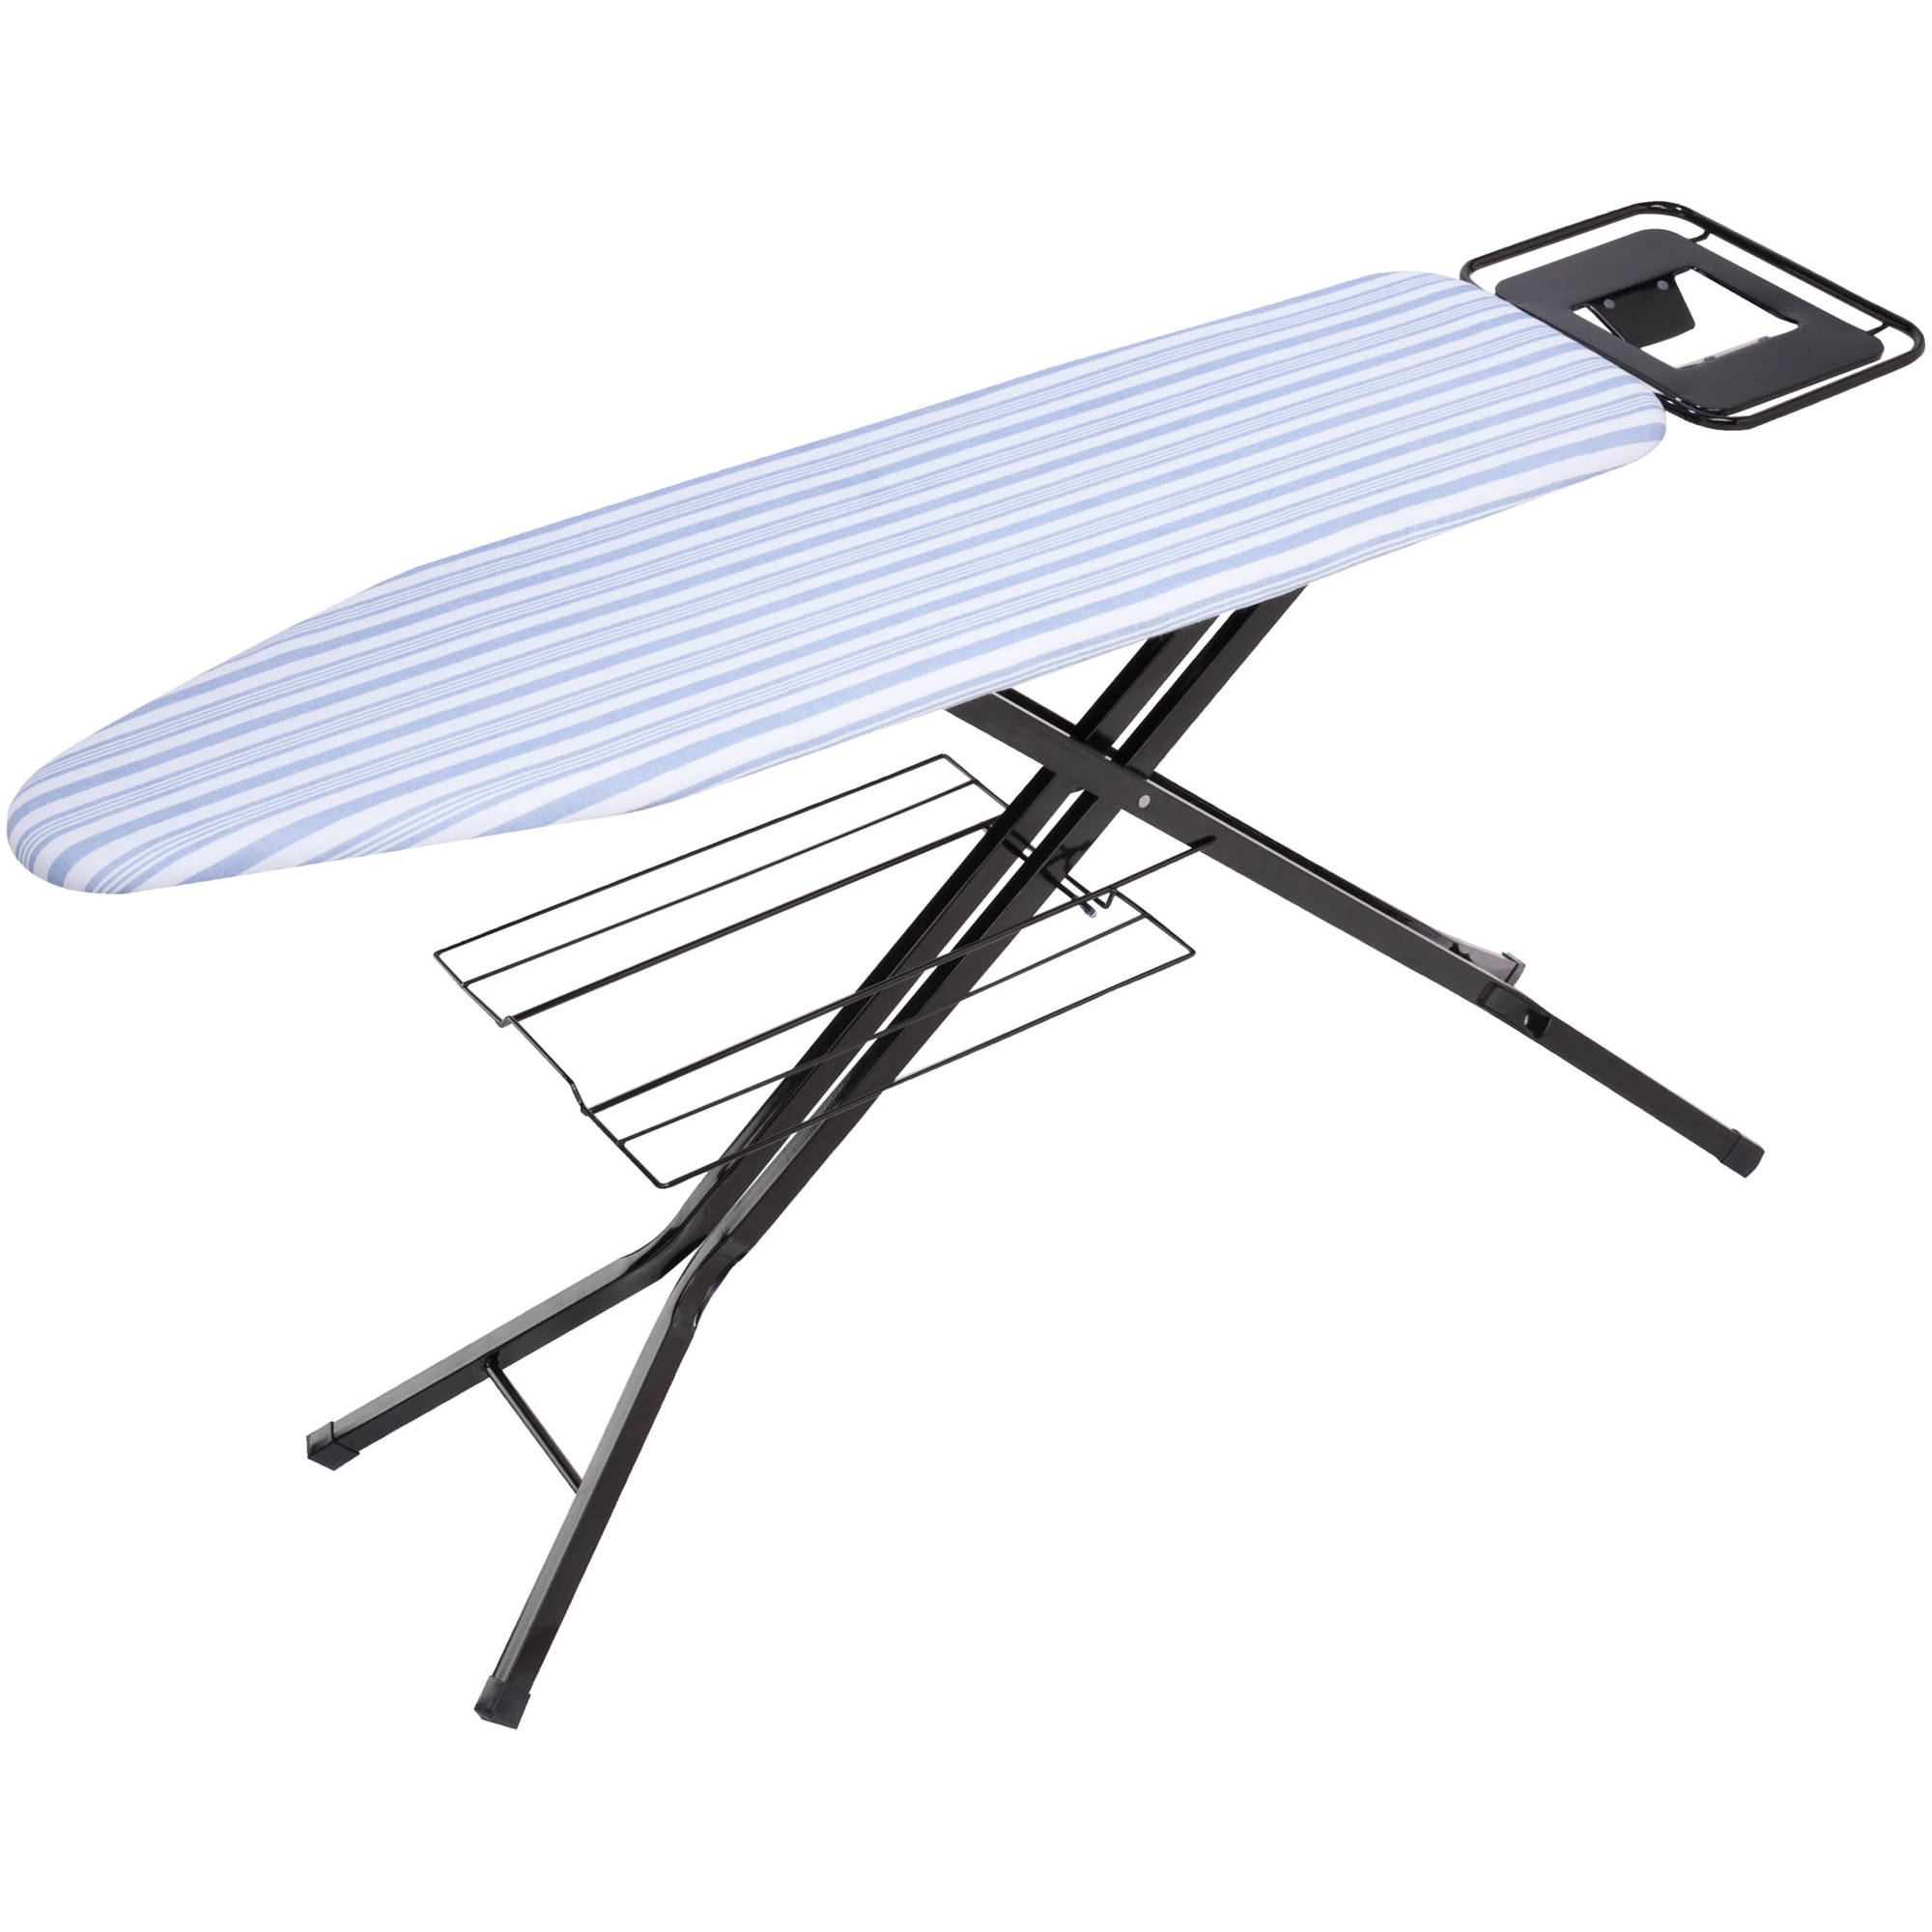 Honey Can Do Ironing Board with 4-Leg Stand and Iron Rest, Black/Blue